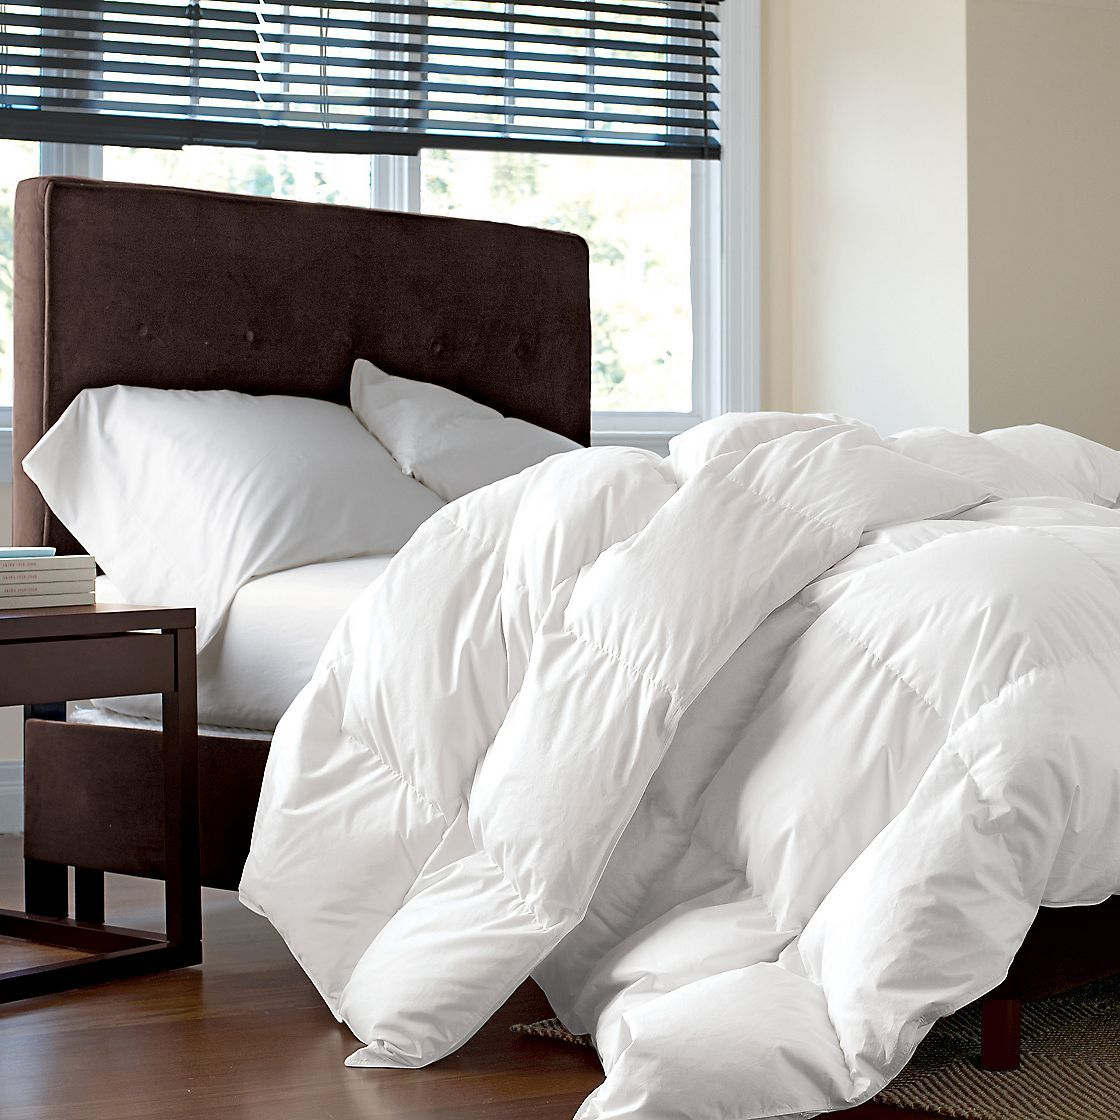 Love Down Comforters Choice 1 Down Comforter White Down